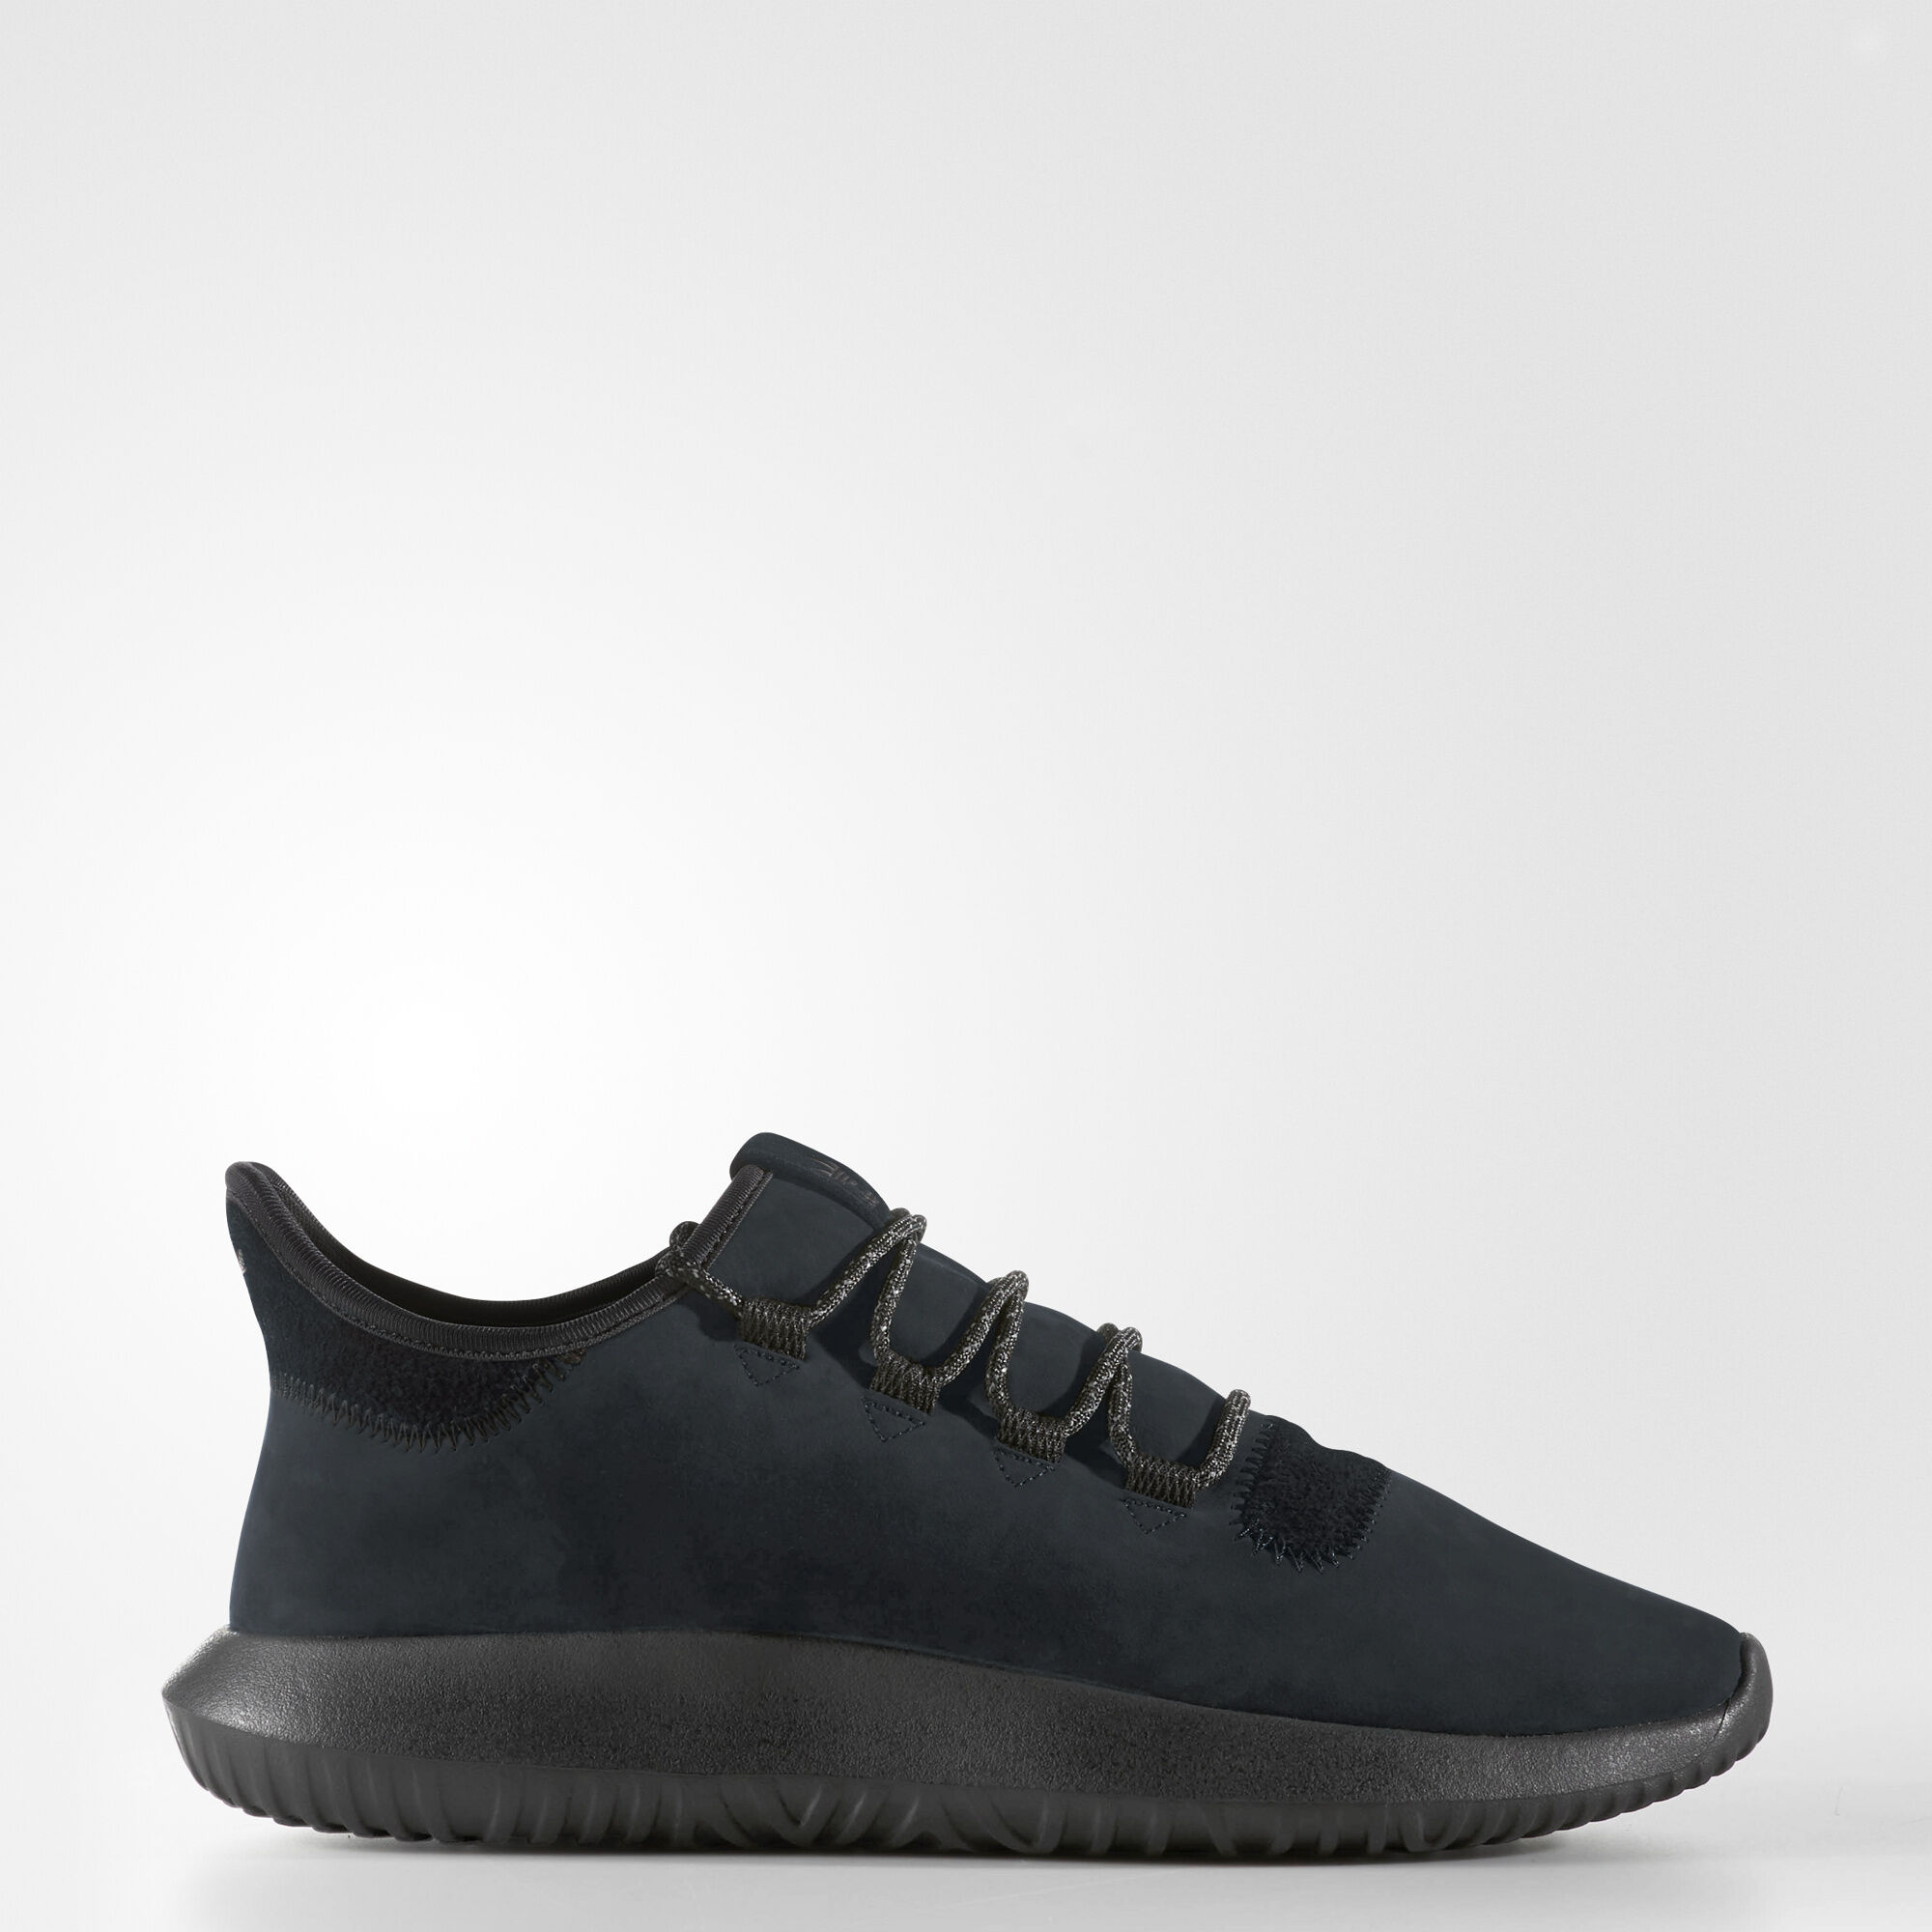 adidas tubular shadow black